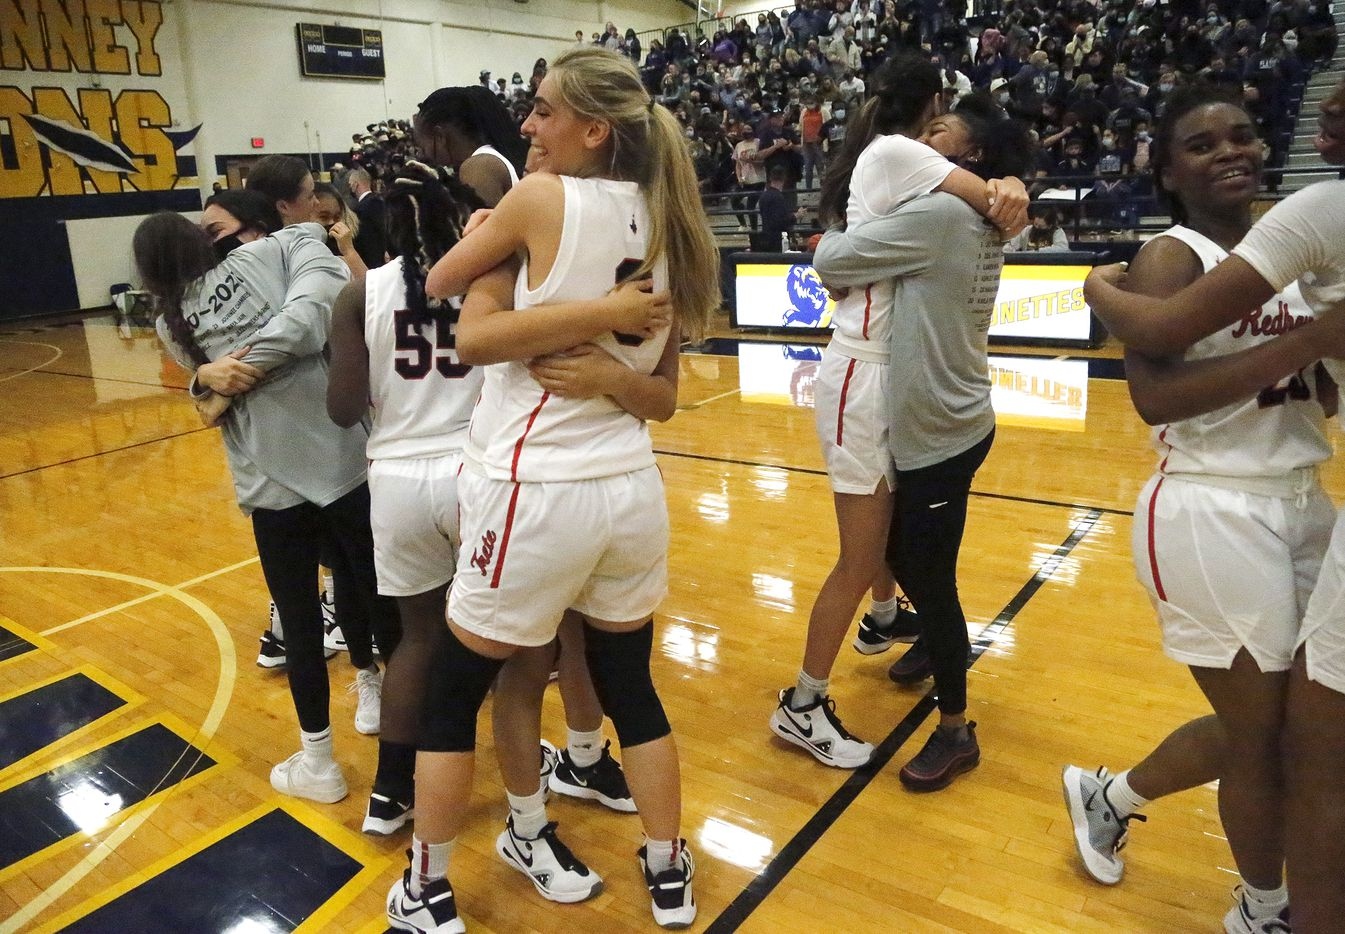 Frisco Liberty High School forward Lily Ziemkiewicz (3) embraces Frisco Liberty High School guard Kamen Wong (11) as the team celebrates victory at mid court as Frisco Liberty High School hosted Wylie East High School in the girls basketball Class 5A Region II final at McKinney High School on Tuesday, March 2, 2021.  (Stewart F. House/Special Contributor)